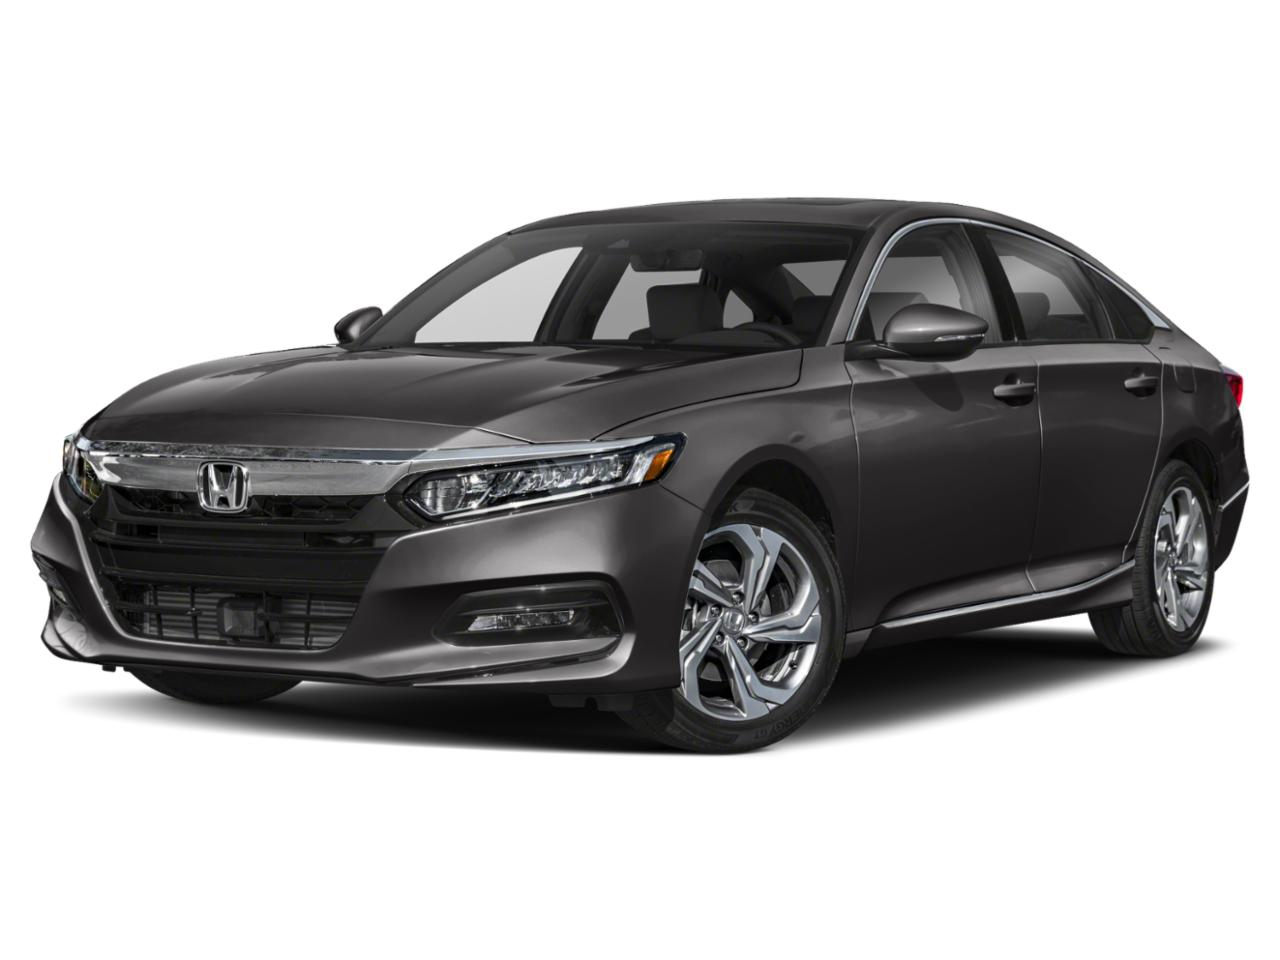 2020 Honda Accord Sedan Vehicle Photo in Oshkosh, WI 54904